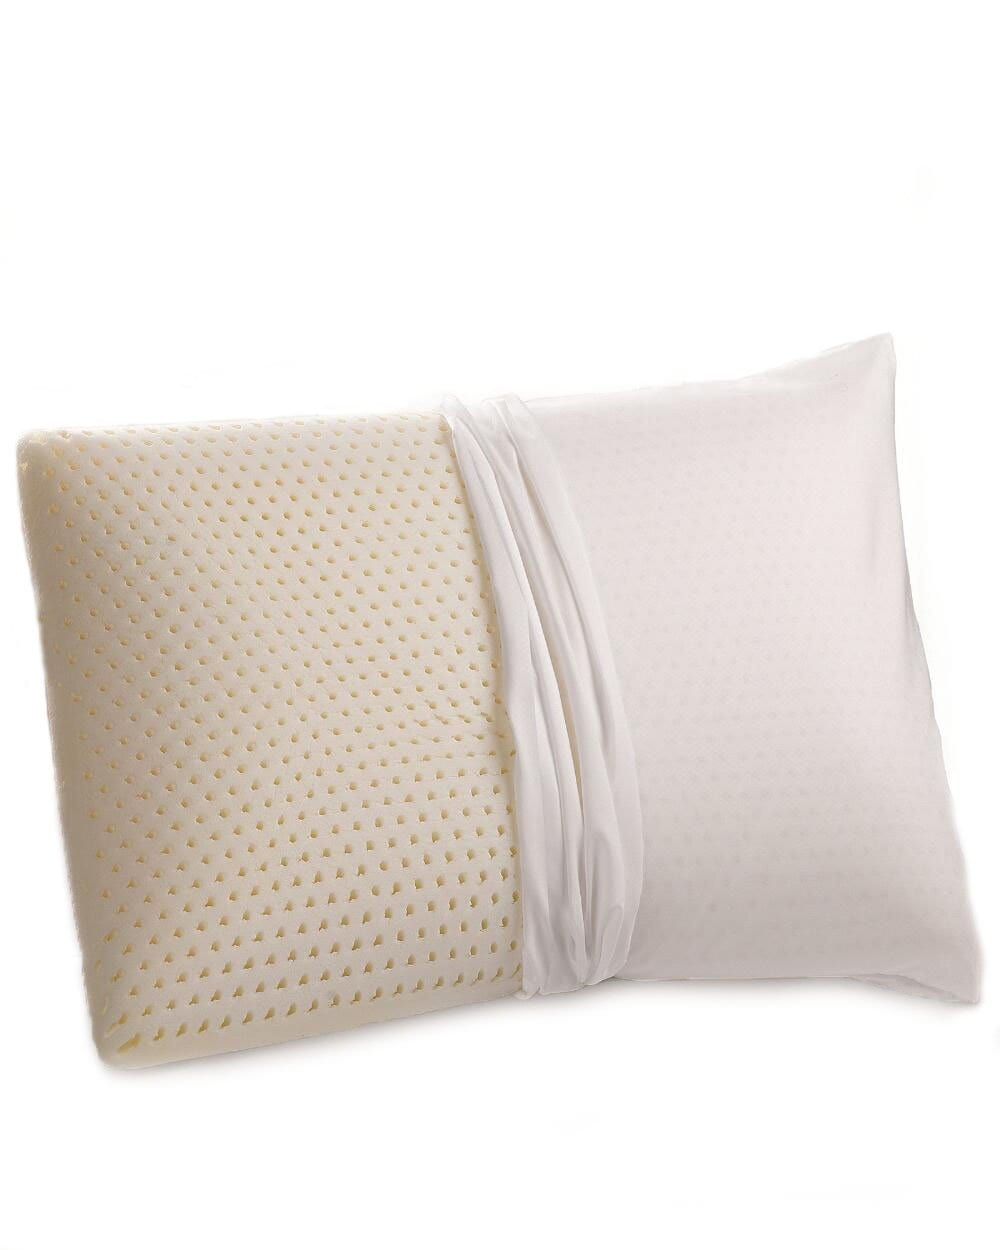 PureTree Talalay best latex pillow review by www.dailysleep.org